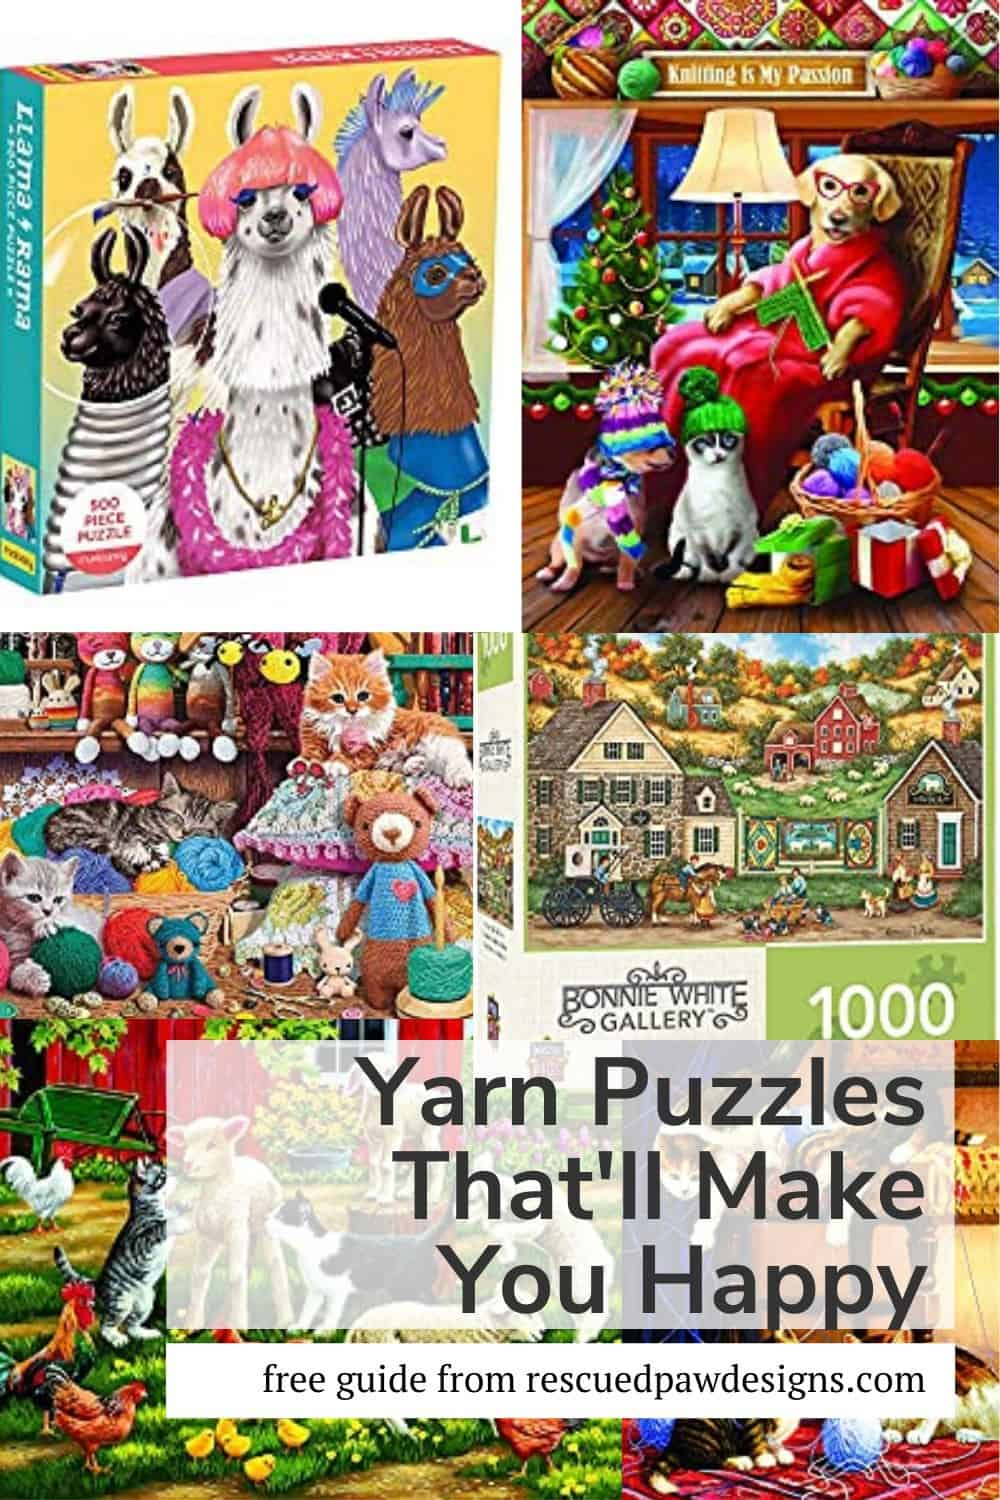 Yarn Jigsaw Puzzles that feature yarn, sheep, lambs and more!